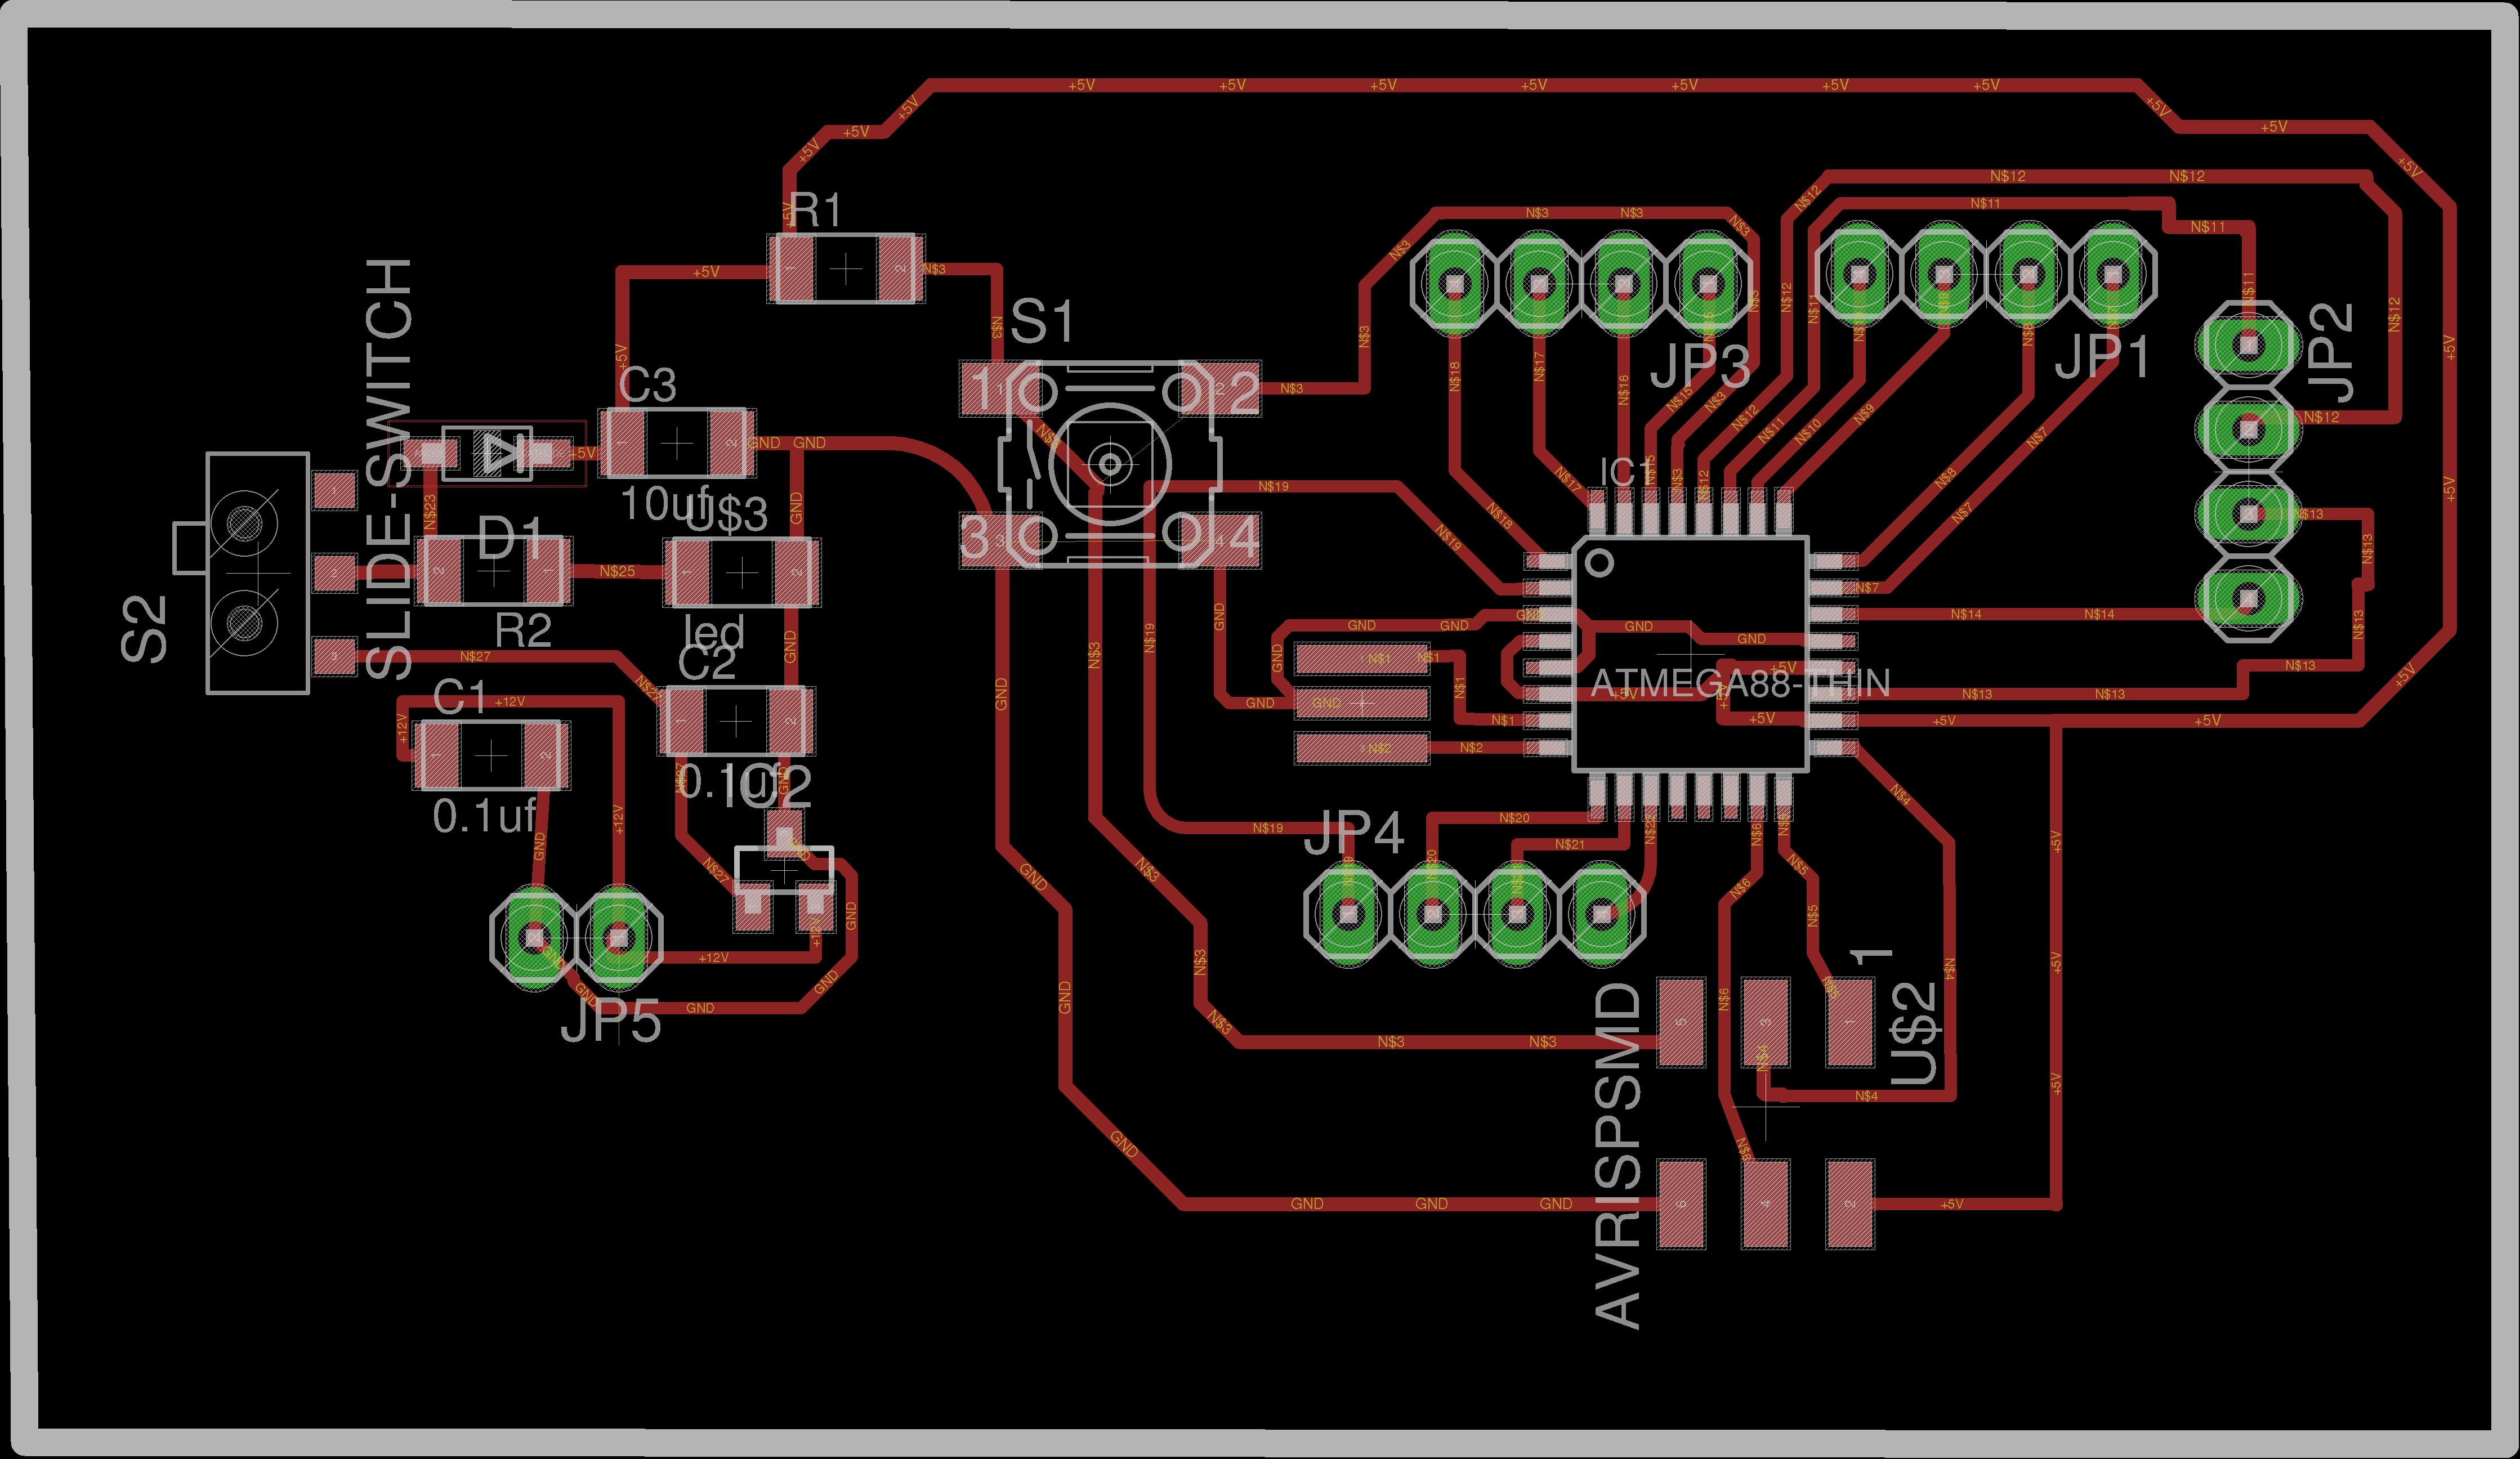 Week 13 Avr Atmega16 Watchdog Timer Tutorial Circuit This Is For The First Time I Manually Routed My Board Traces Of Near Atmega 328 Pin Are Made 14 Mil Instead 16 In Order